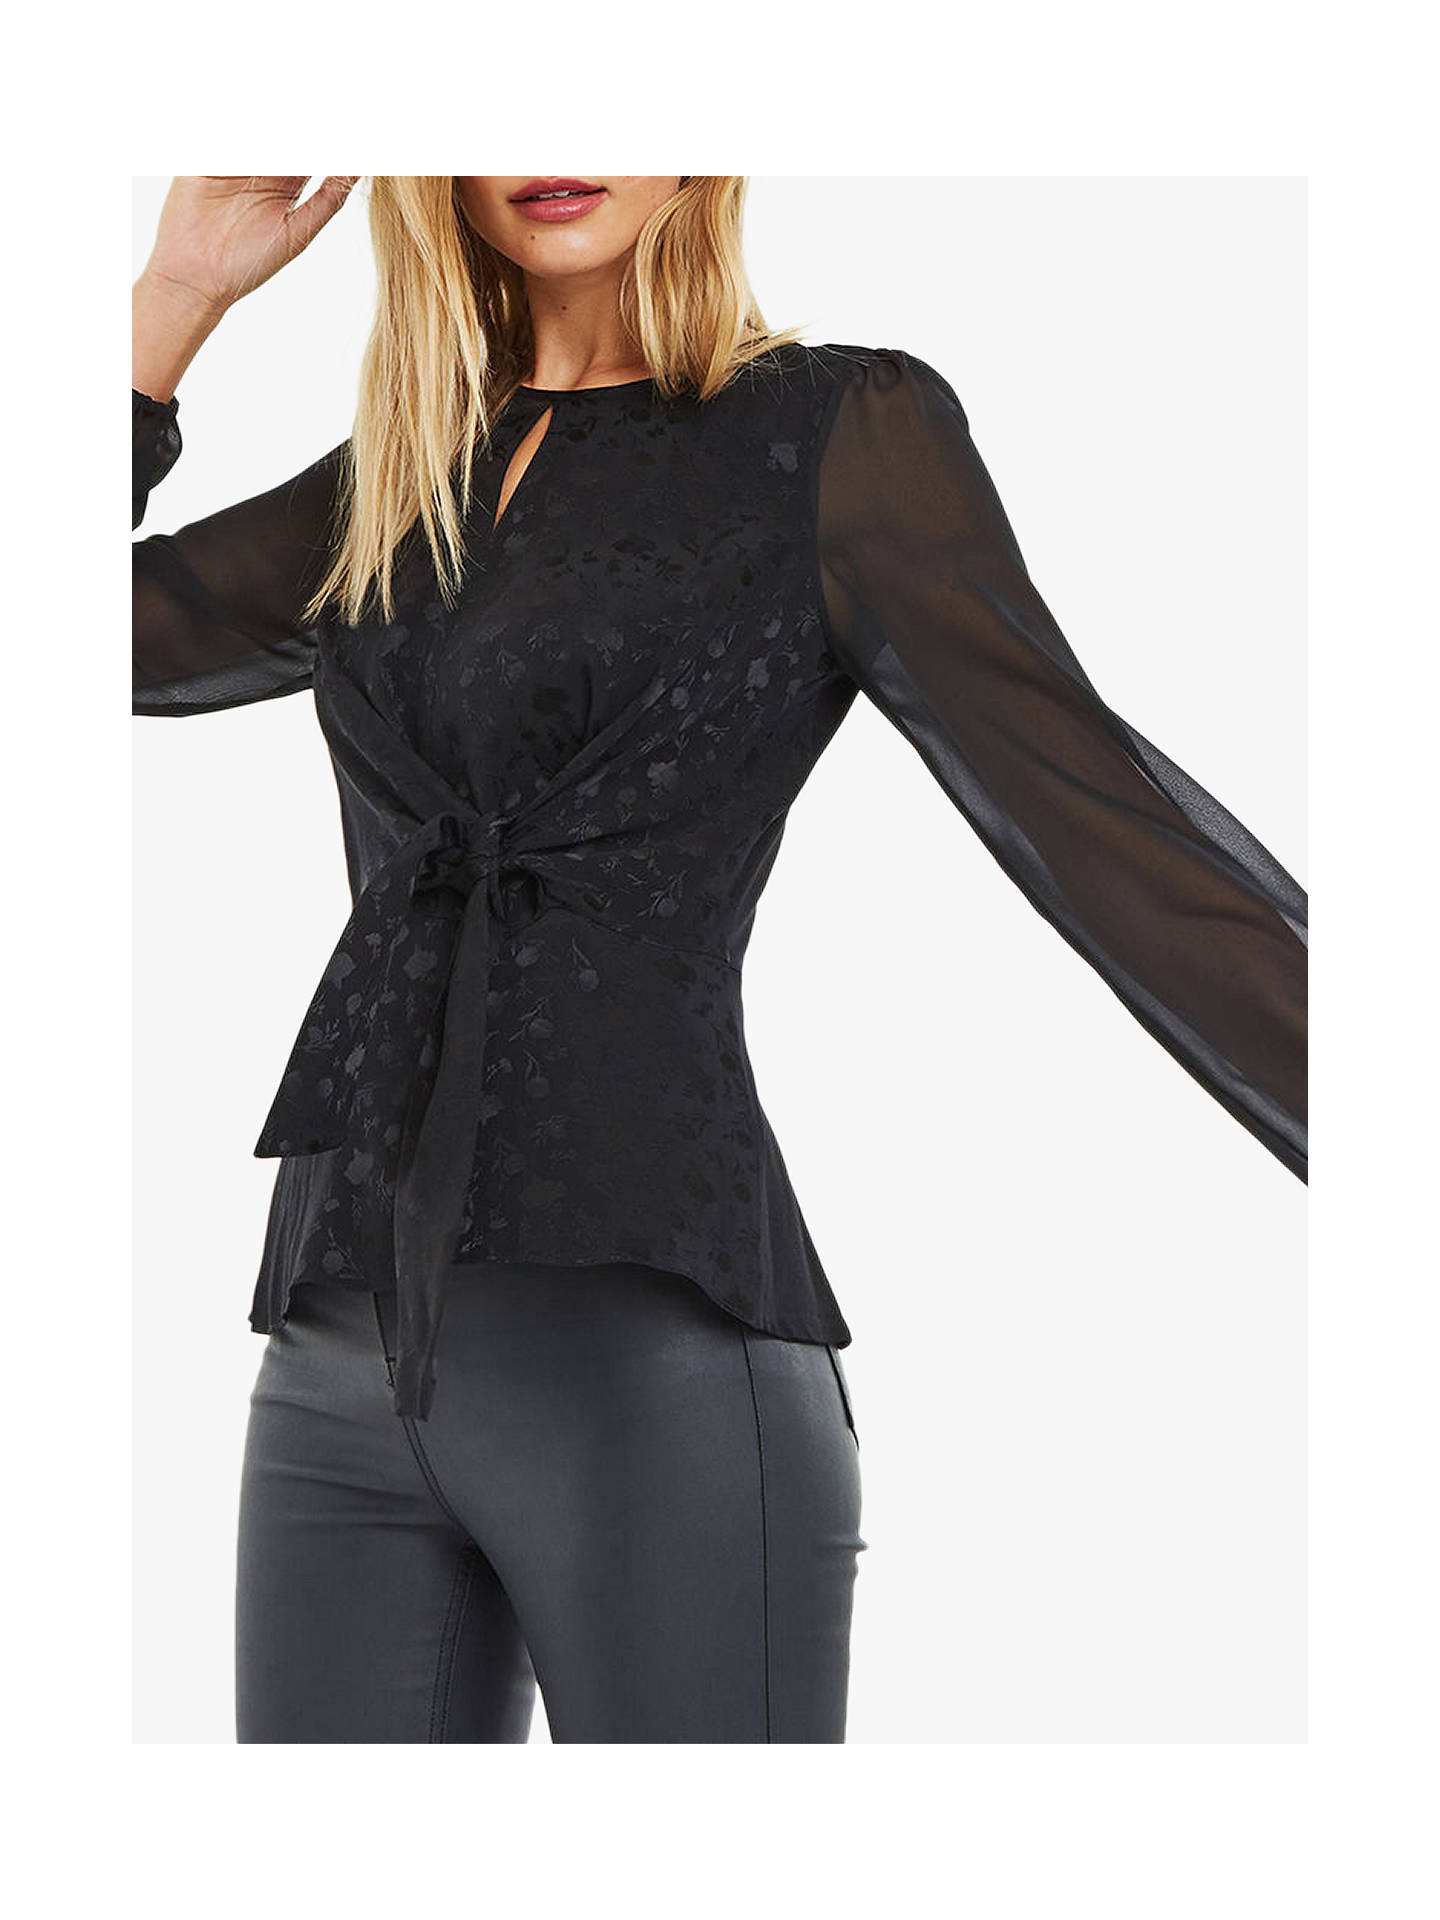 b42b3c5150cdb4 Buy Oasis Jacquard Chiffon Sleeve Blouse, Black, S Online at johnlewis.com  ...